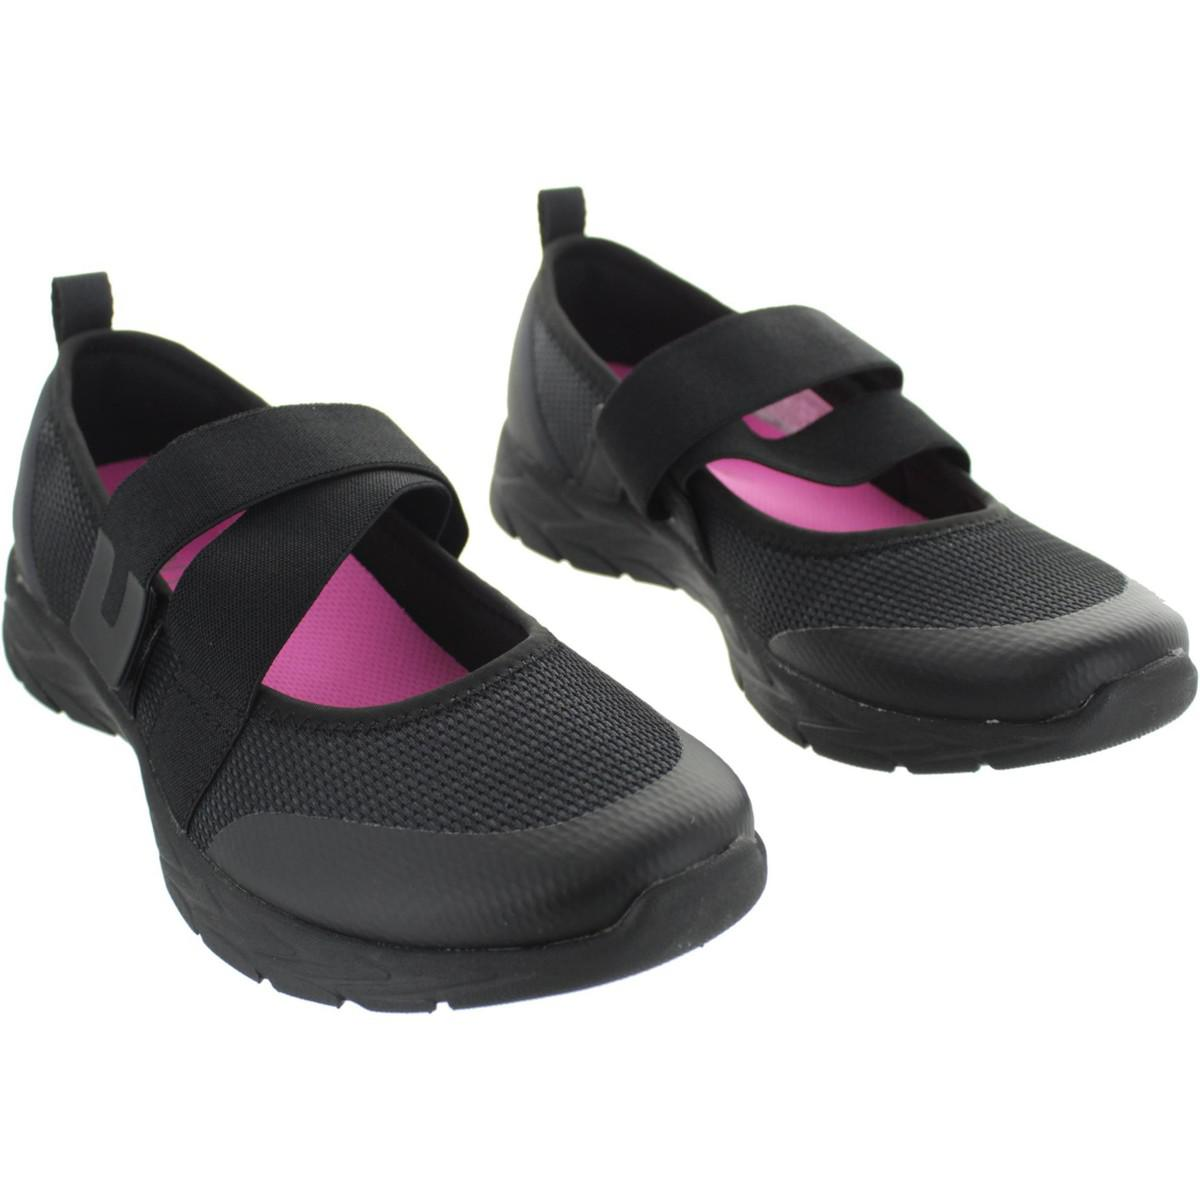 Vionic Pace women's Shoes (Pumps / Ballerinas) in Explore Online Find Great Cheap Online Clearance Discounts 3RRbvm